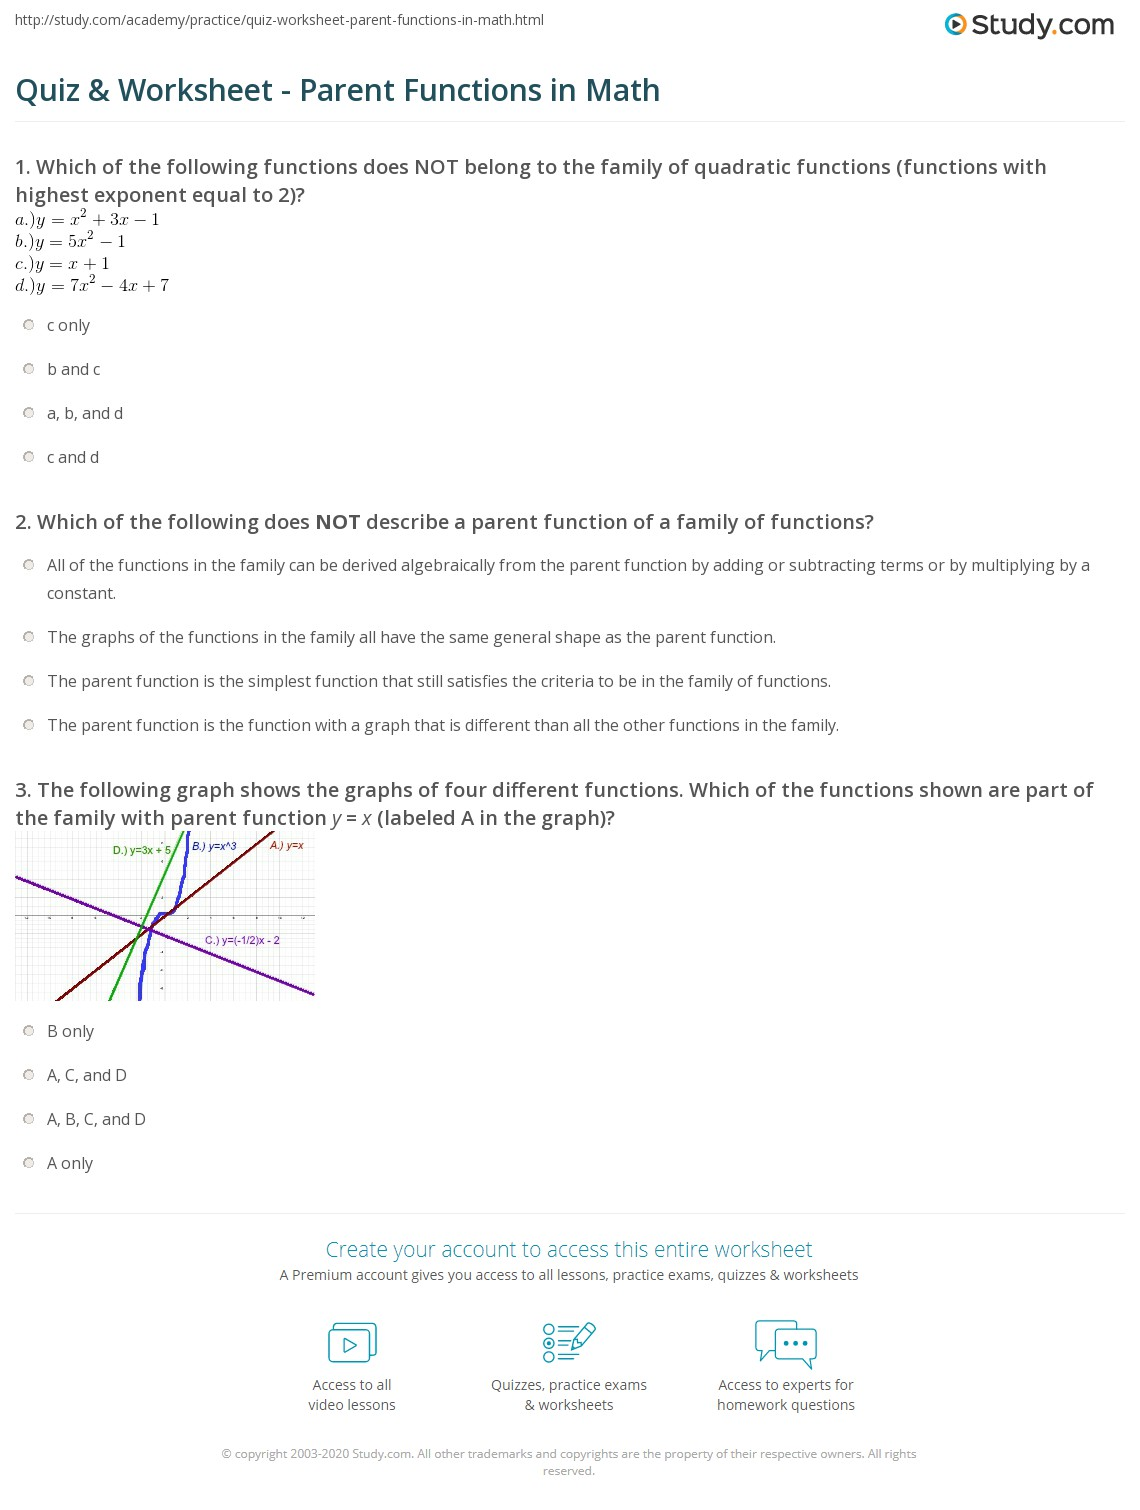 math worksheet : quiz  worksheet  parent functions in math  study  : Functions Math Worksheets